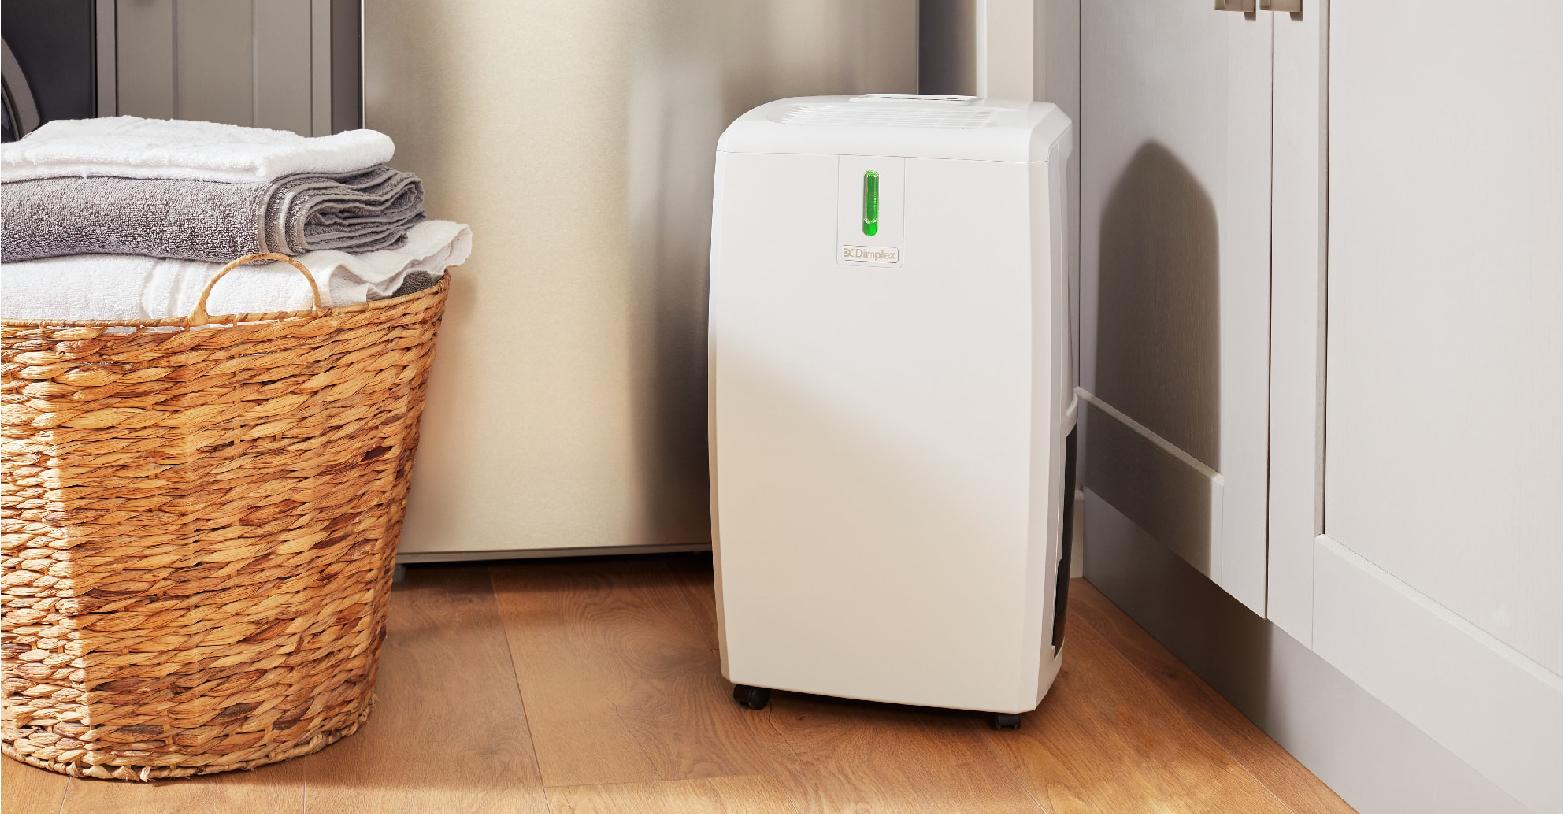 everdri dehumidifier next to laundry